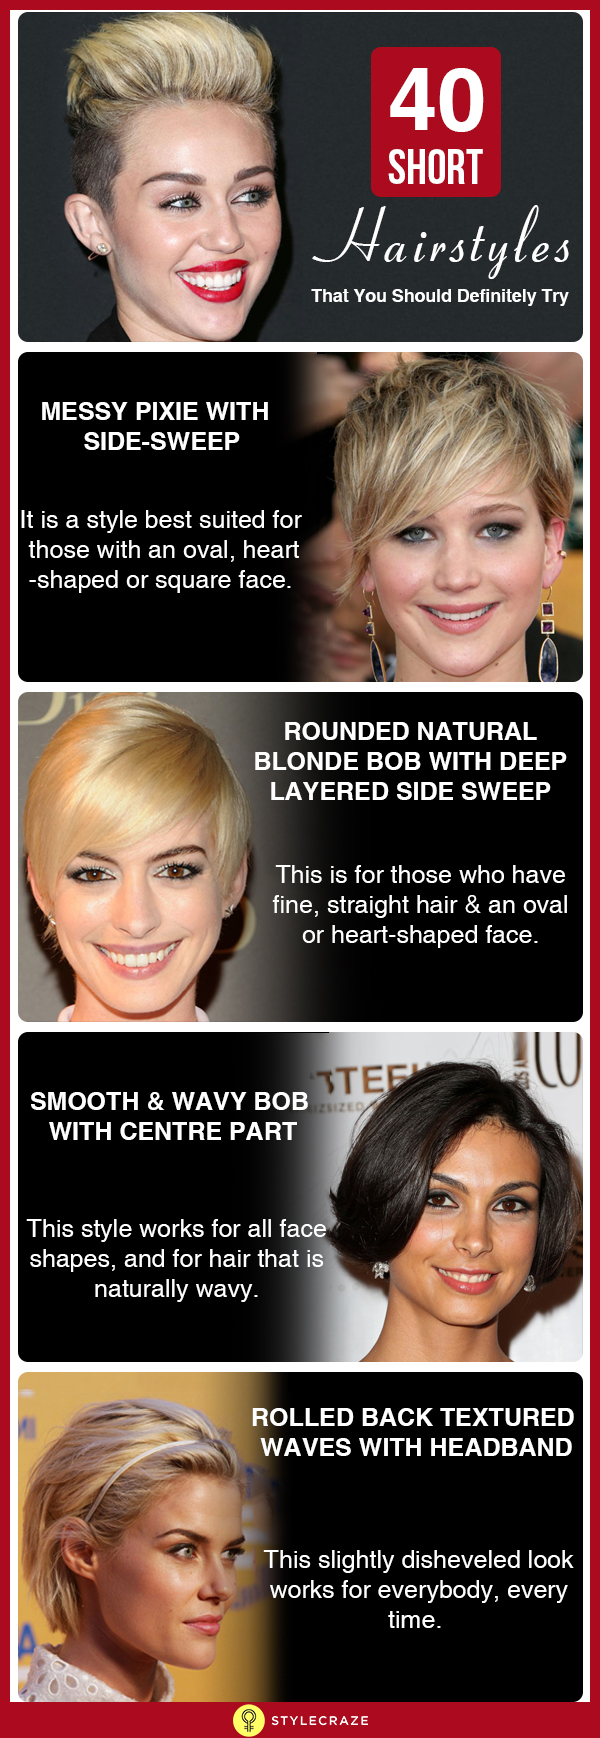 40 Short hairstyles that you should definetly try